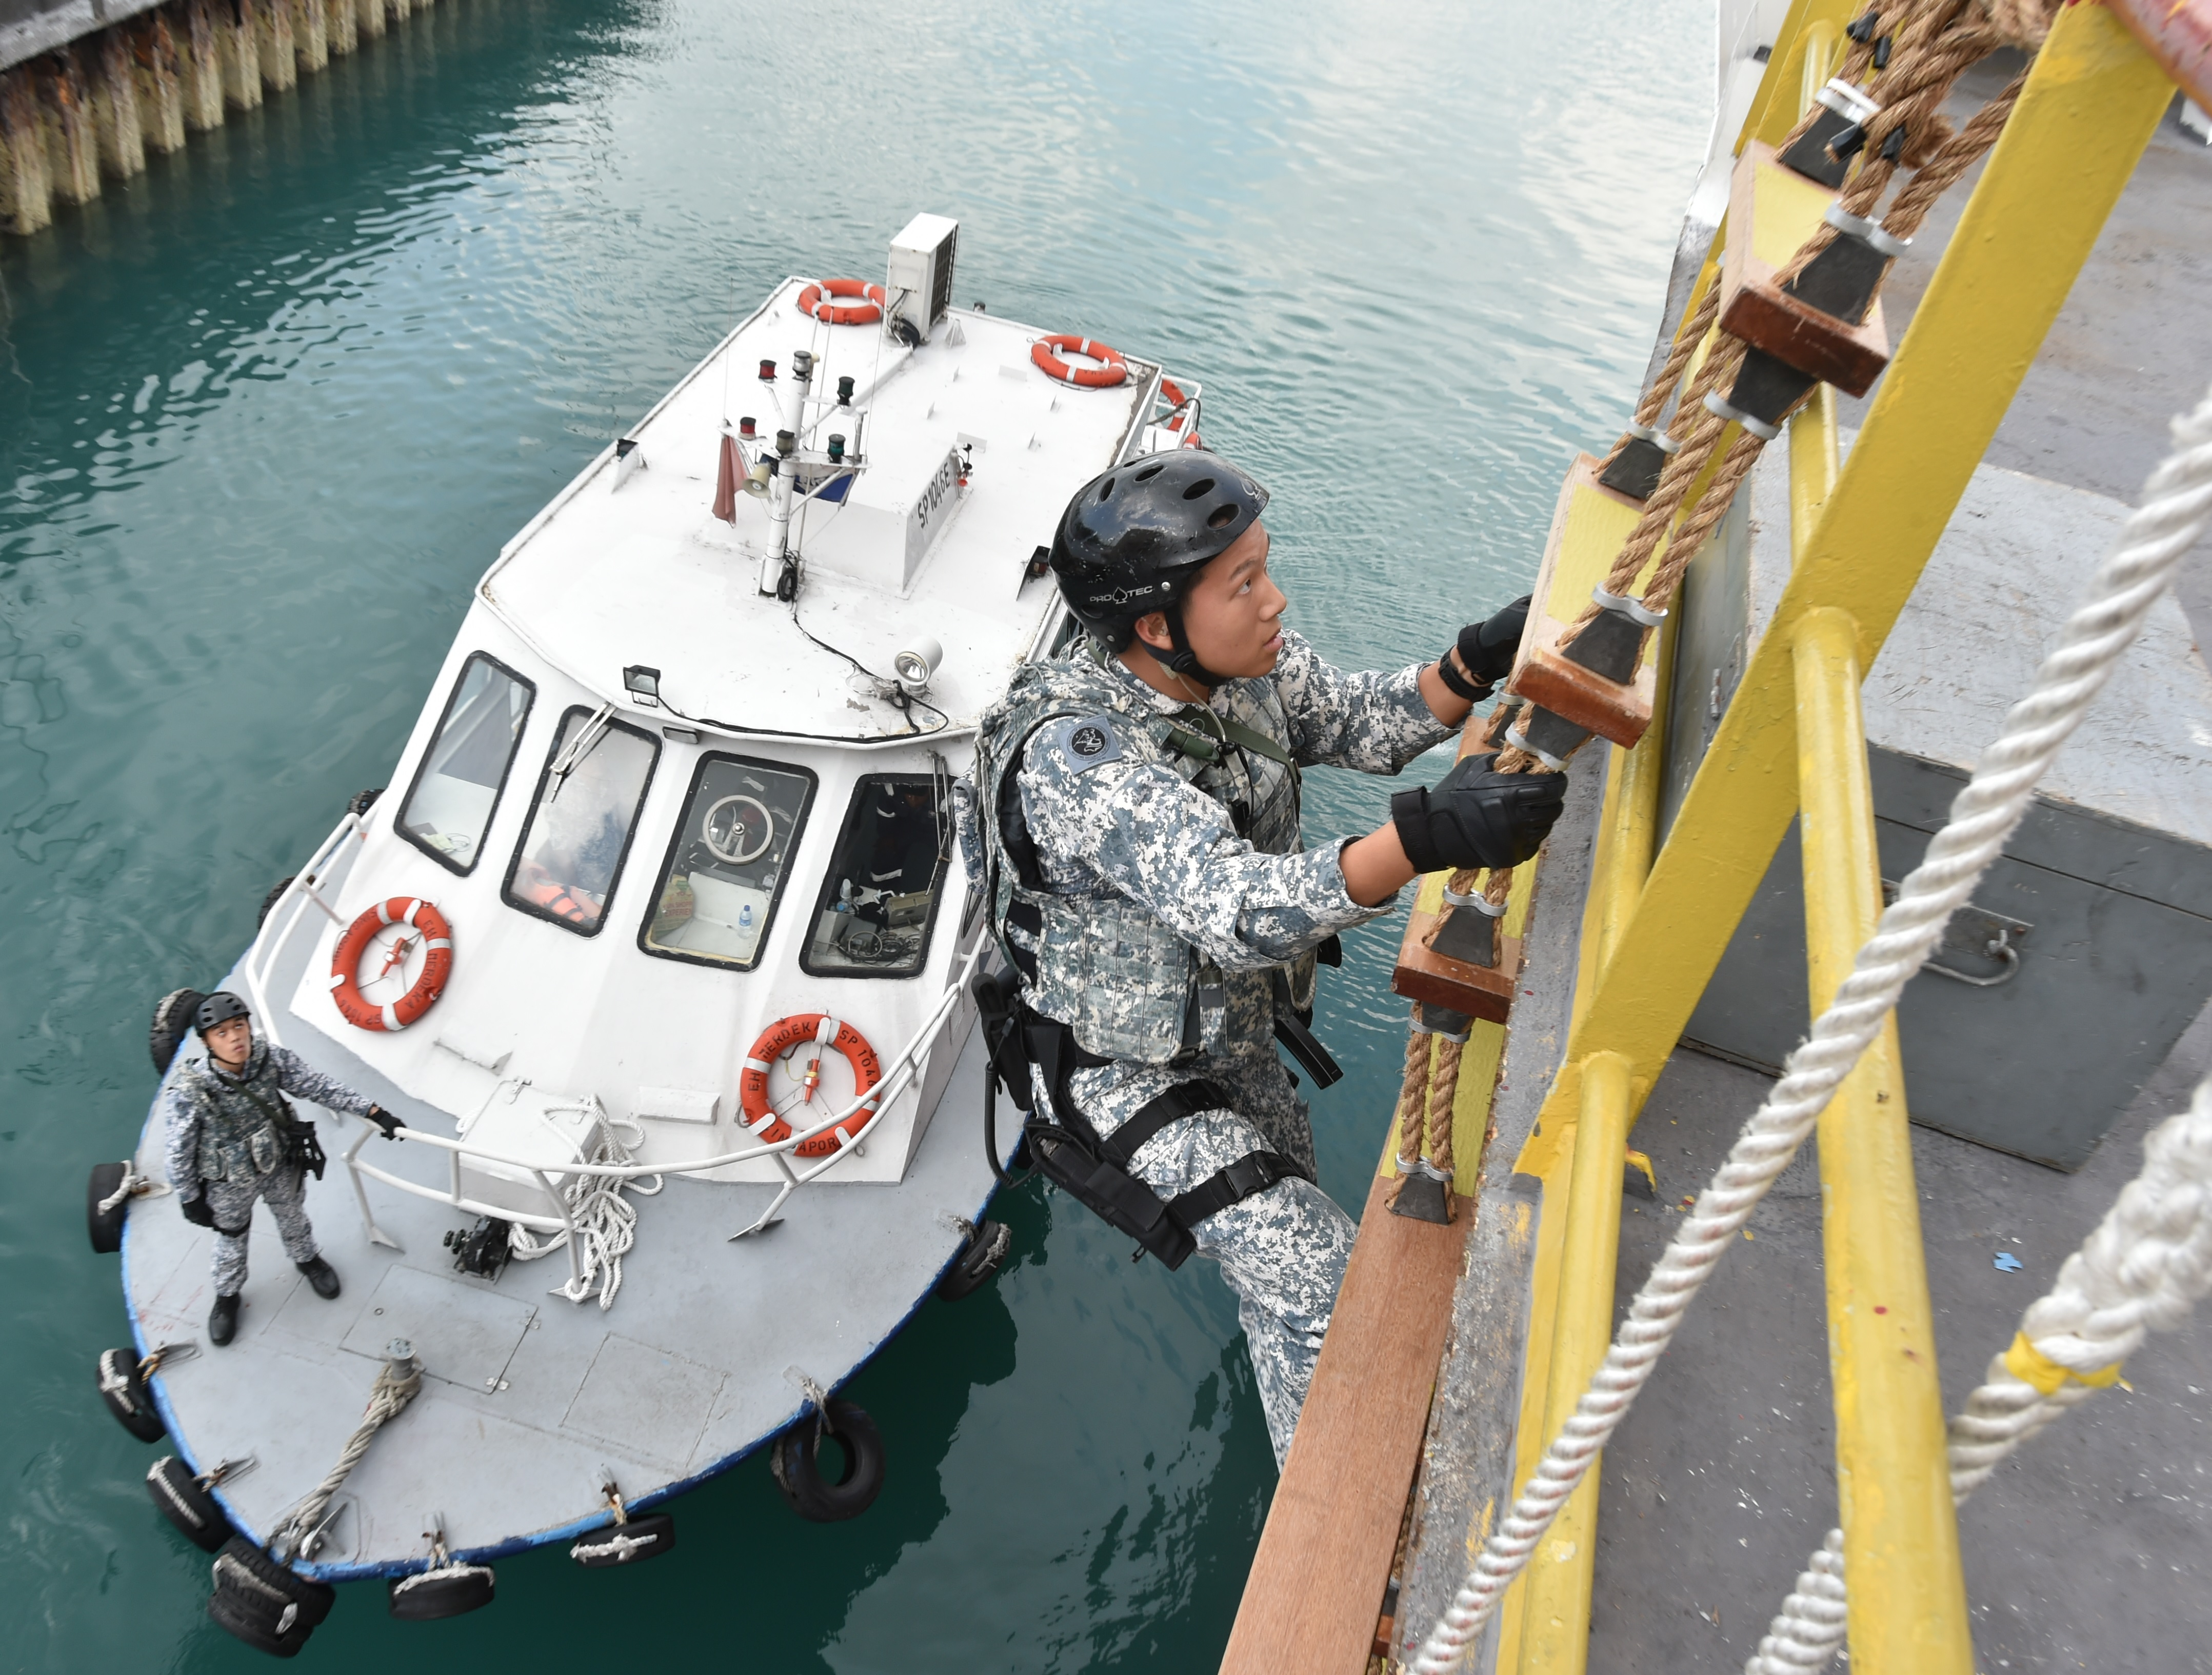 Marshals of the sea safeguarding the S'pore Strait